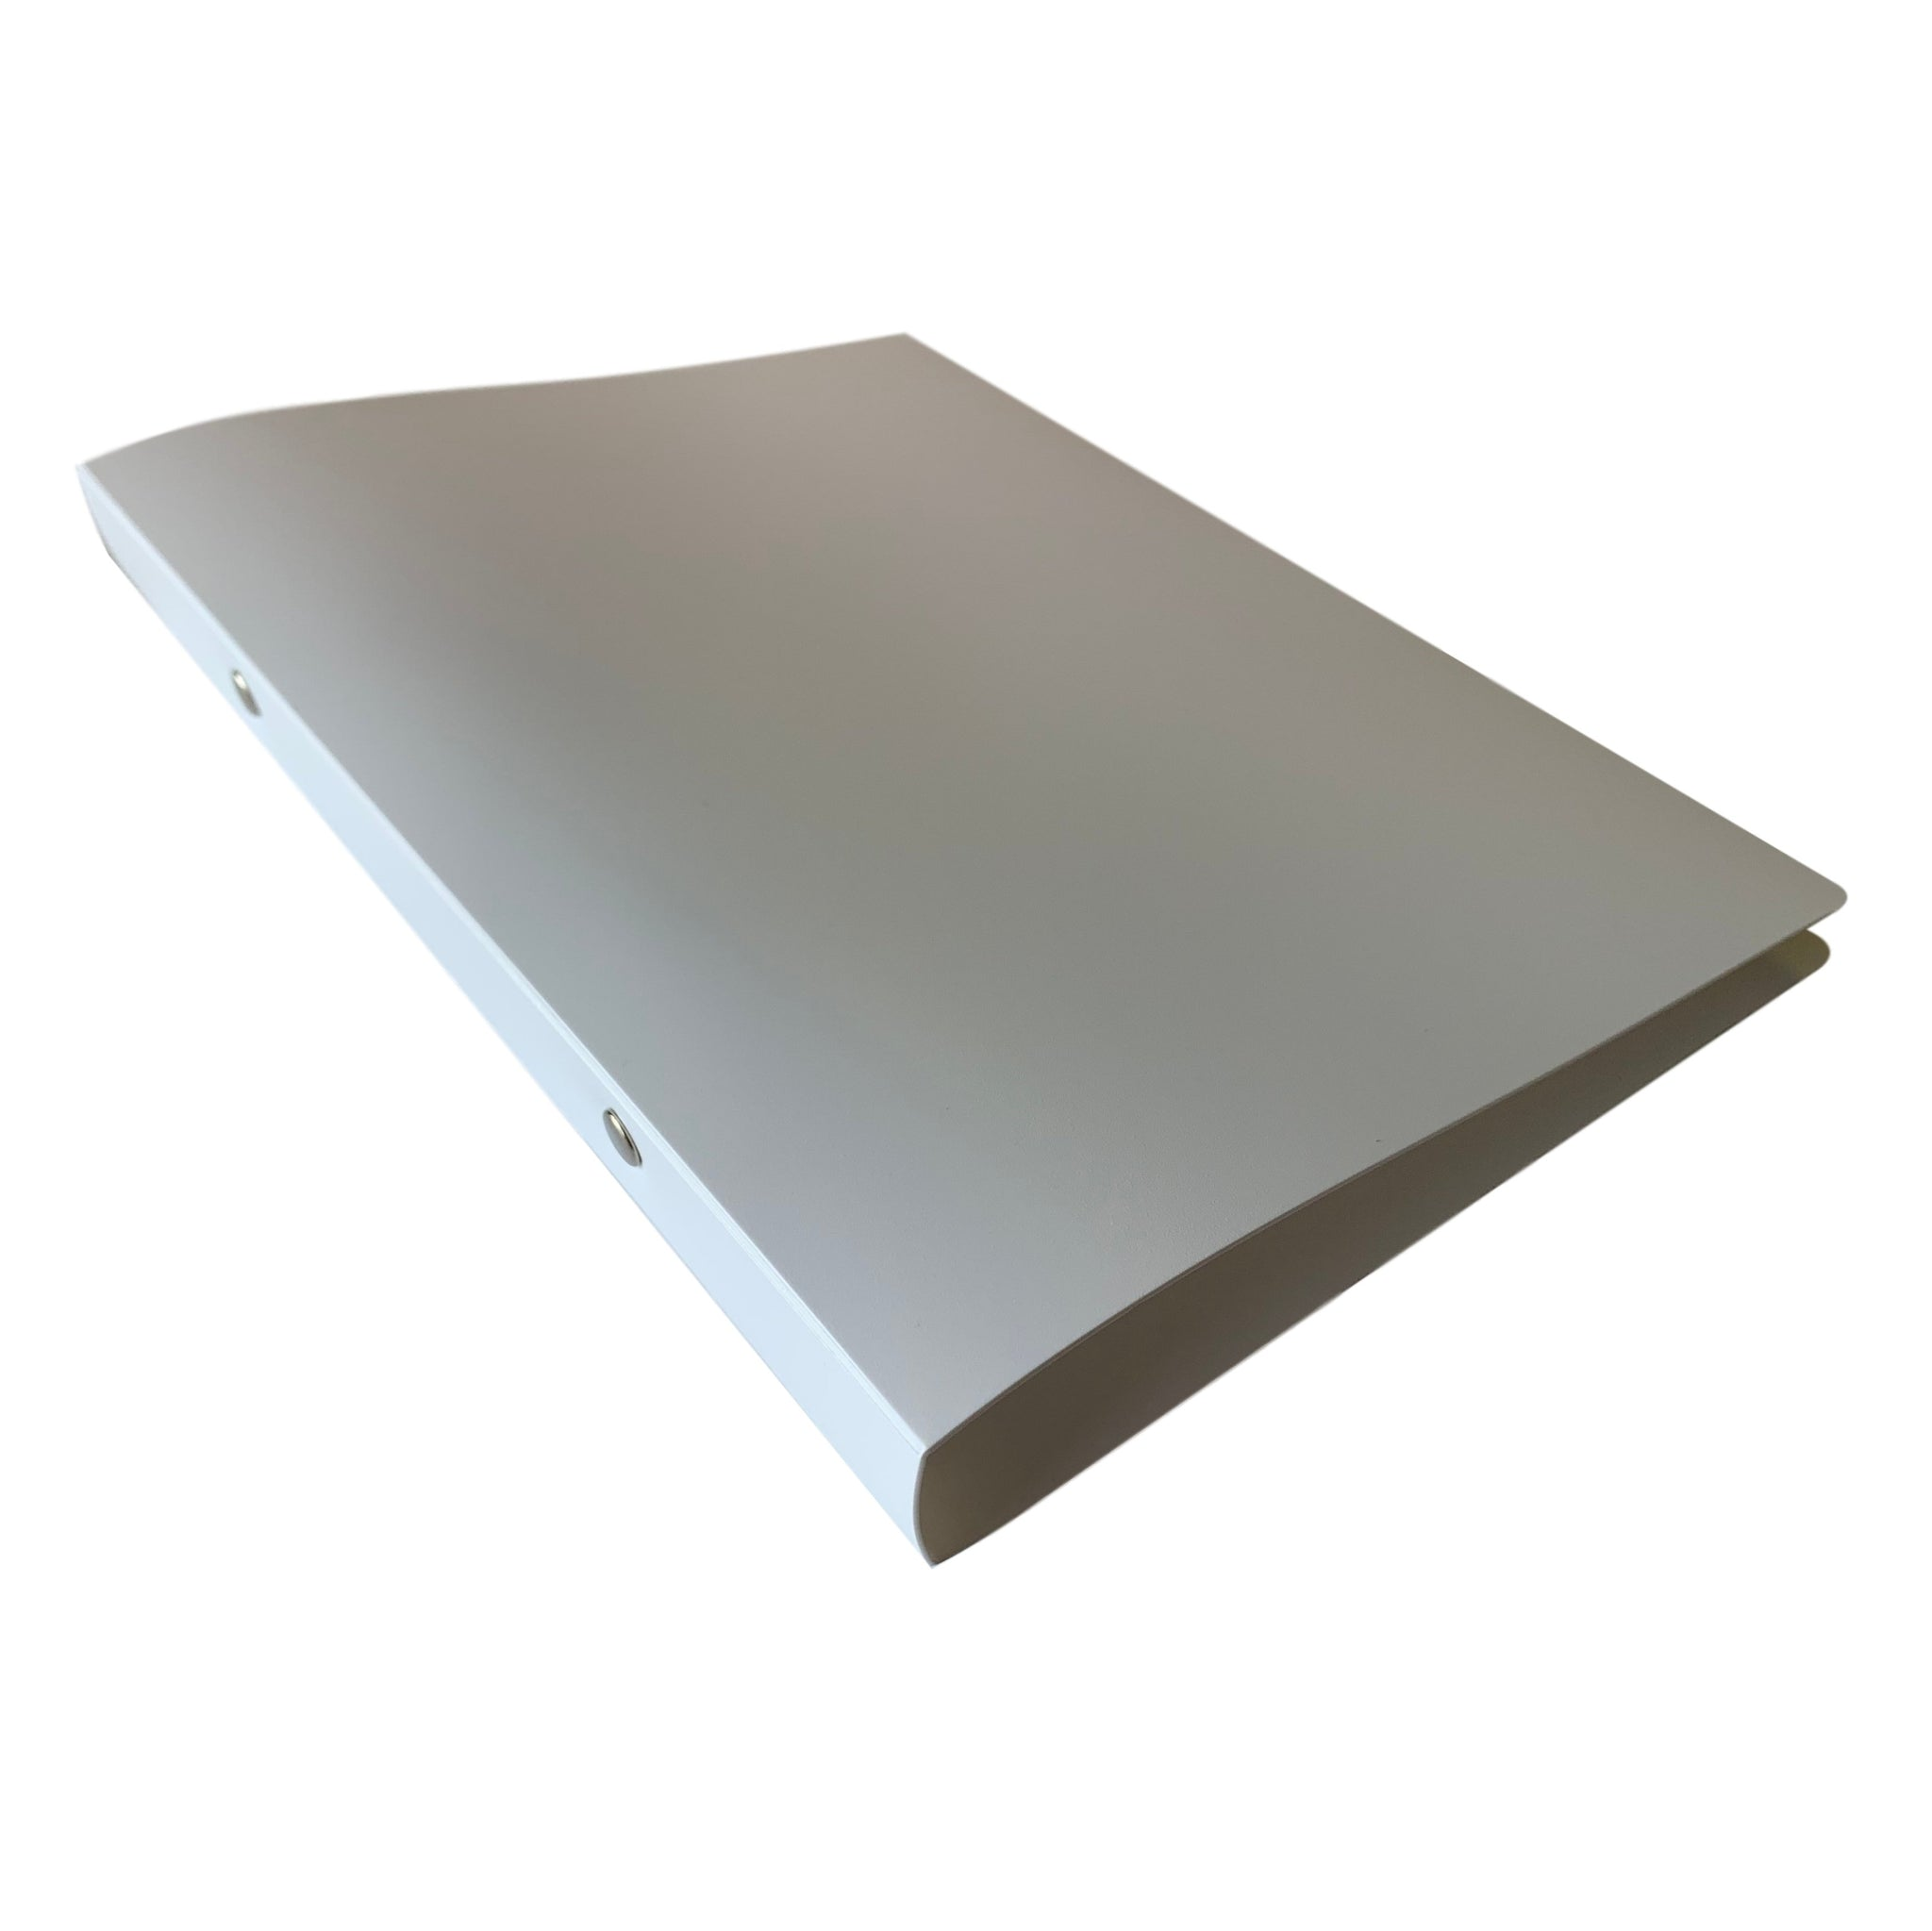 A5 White Ring Binder by Janrax